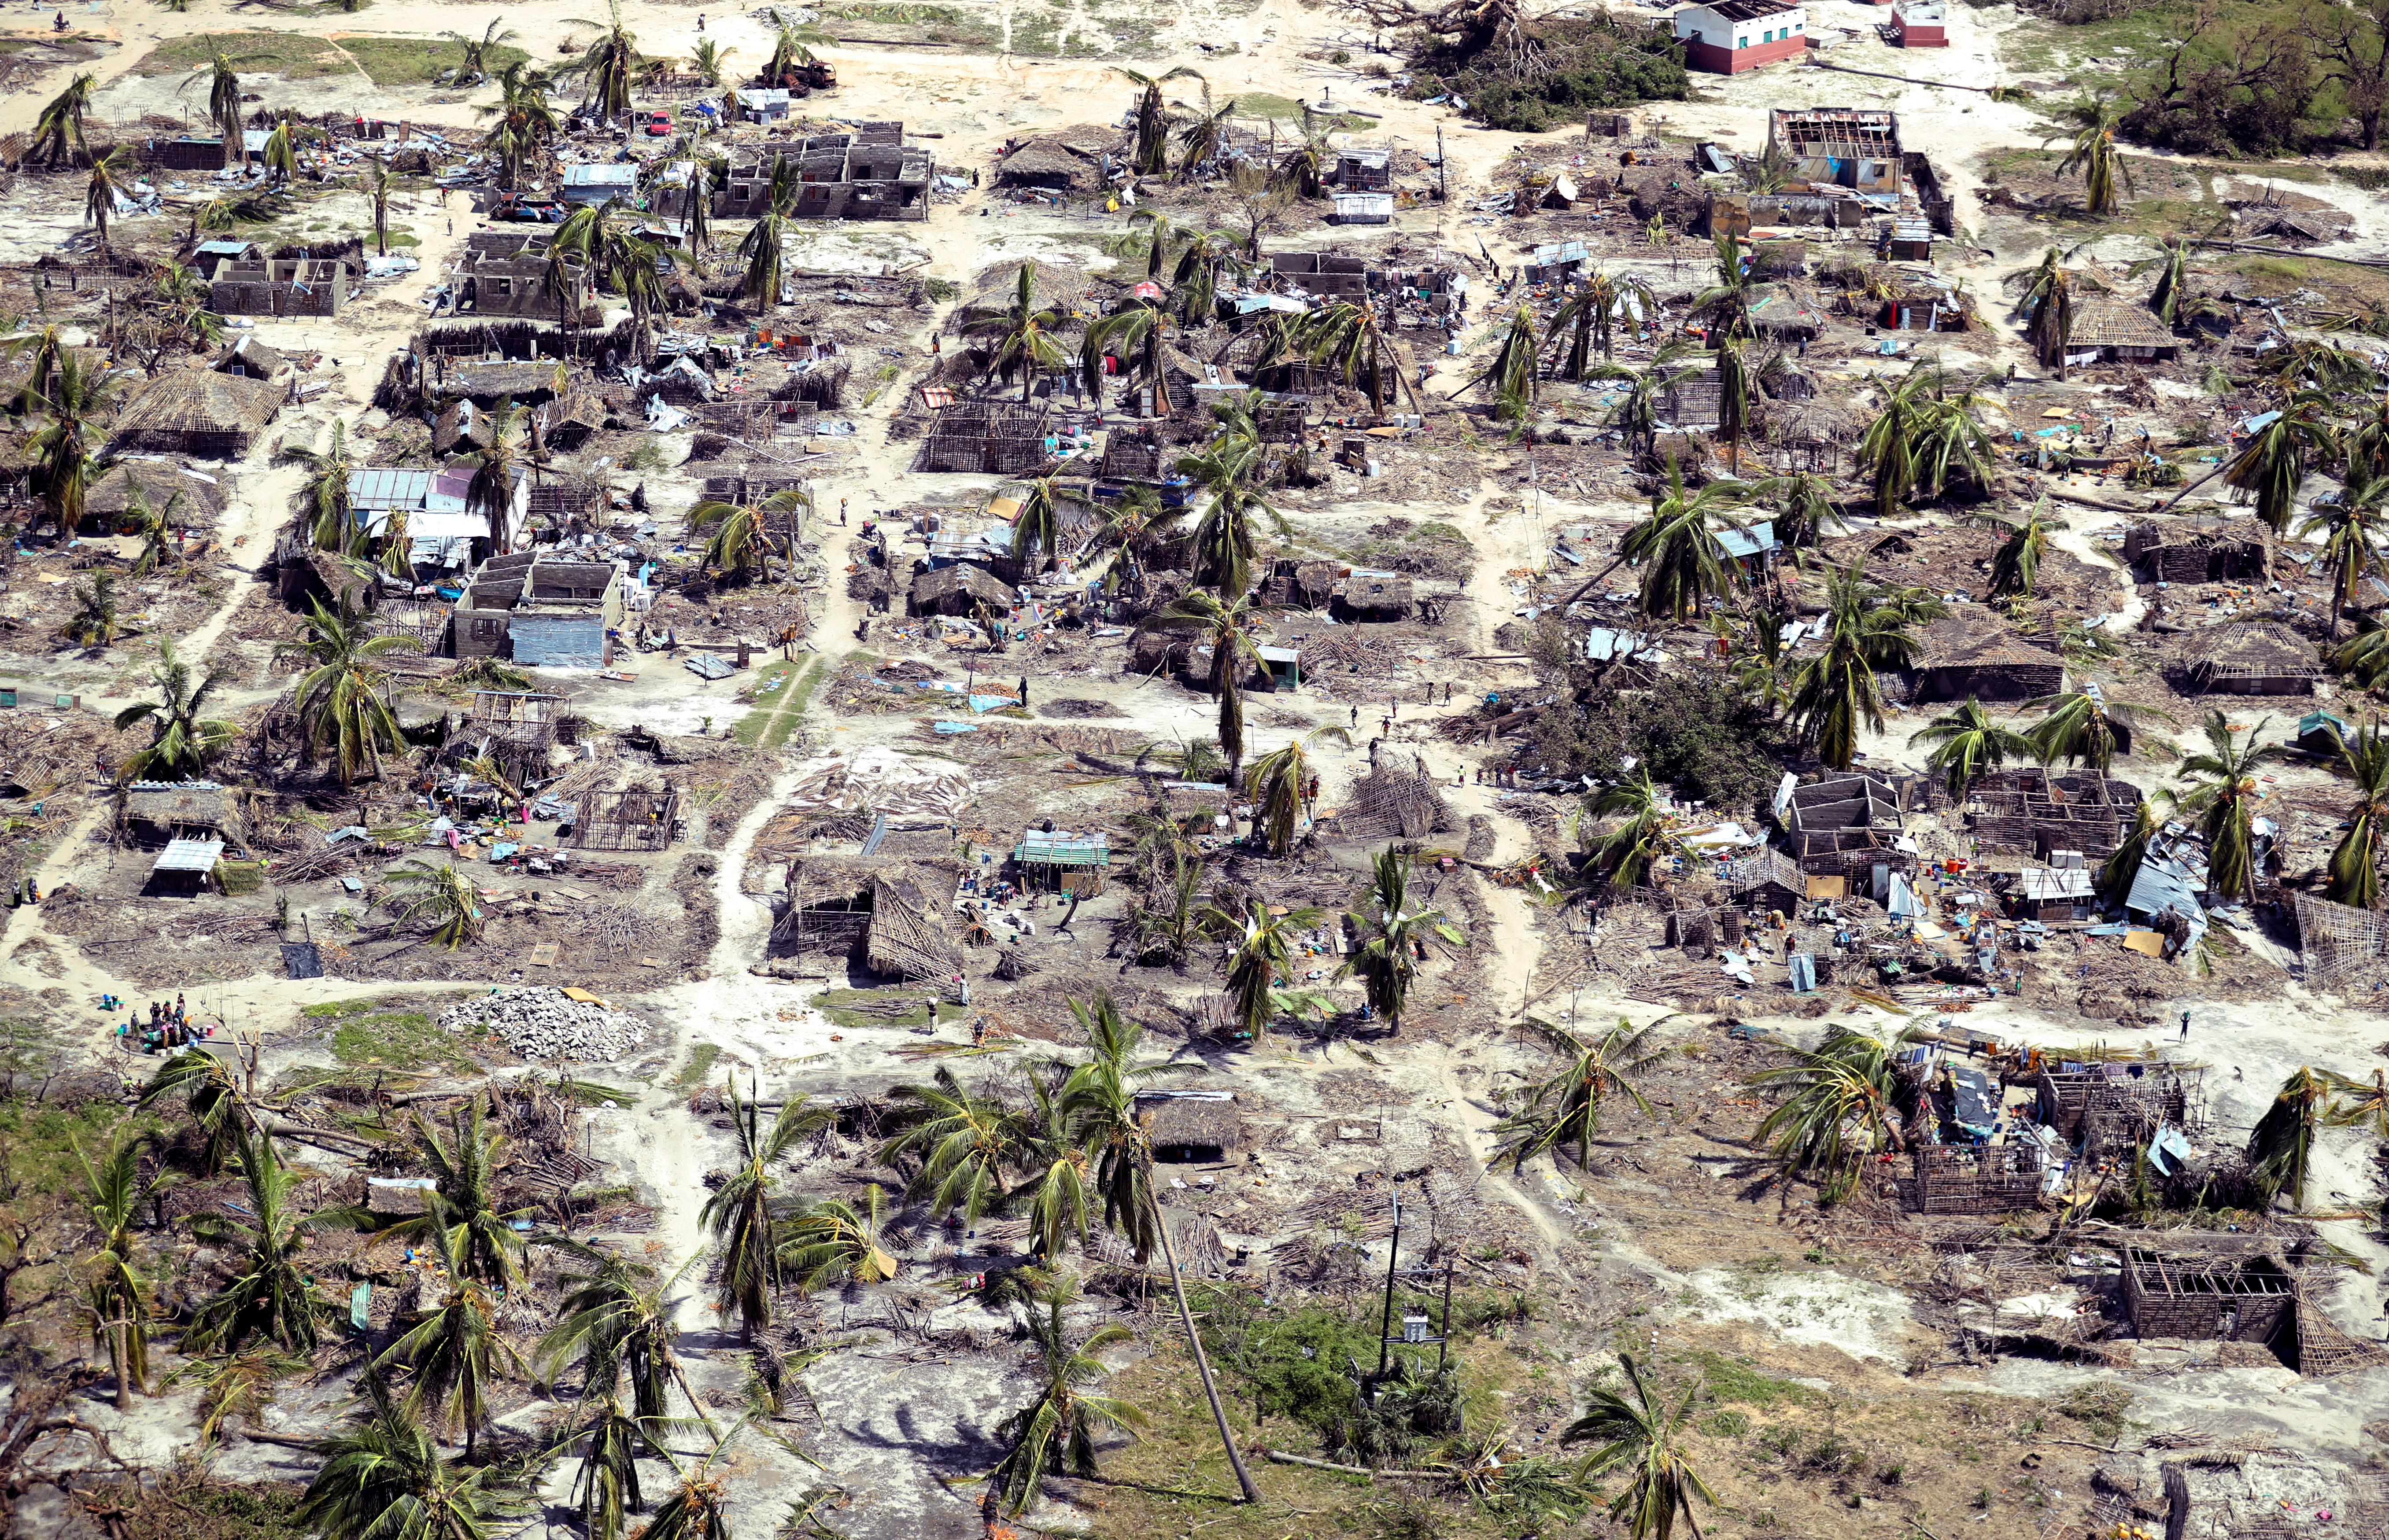 Donors pledge $1.2 billion to rebuild Mozambique after cyclones: U.N.